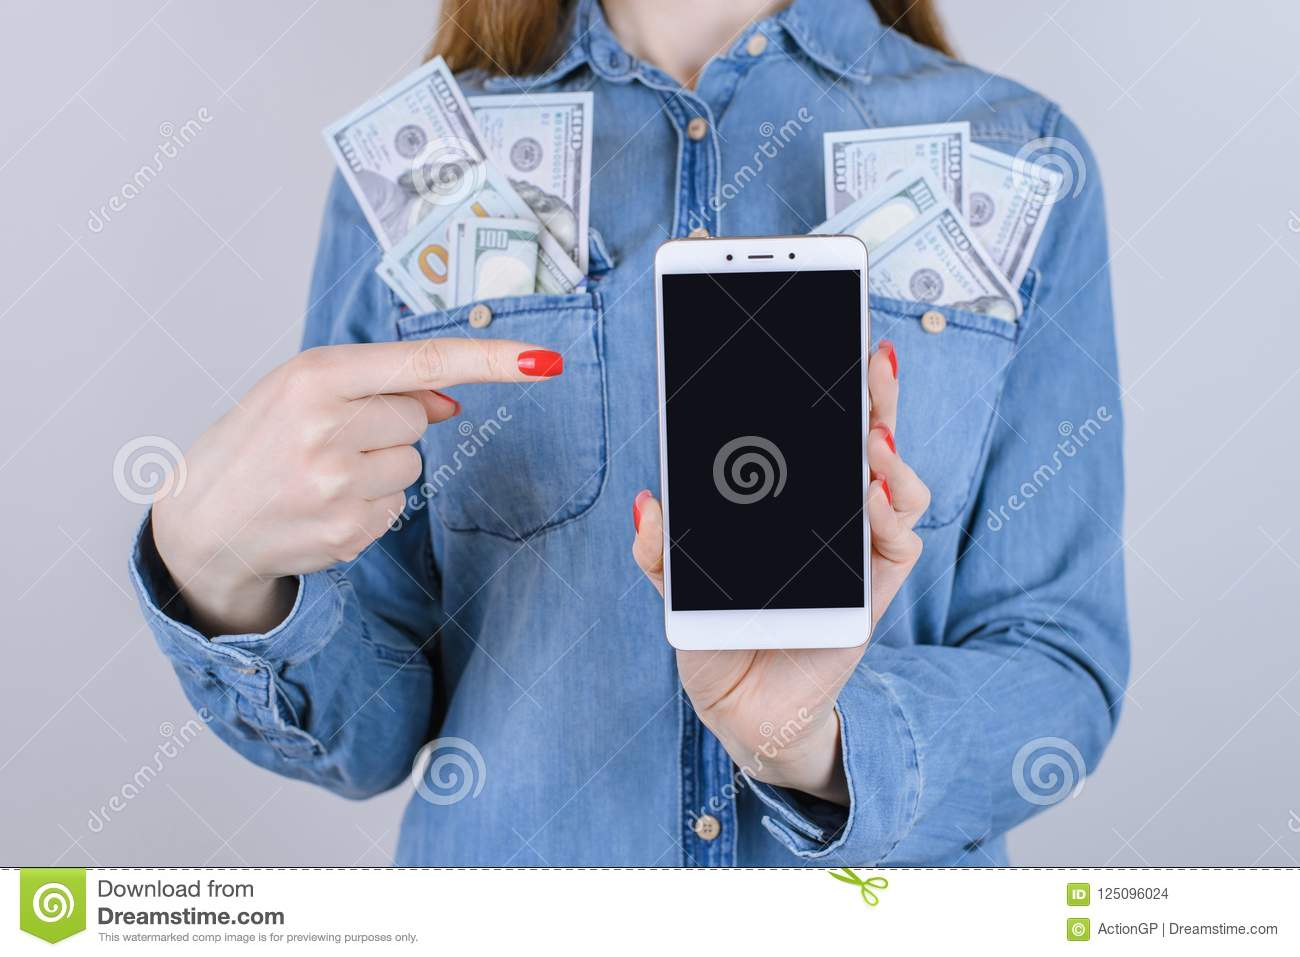 Purchase Site Wallet Bank Jeans Shirt Red Nails Tech